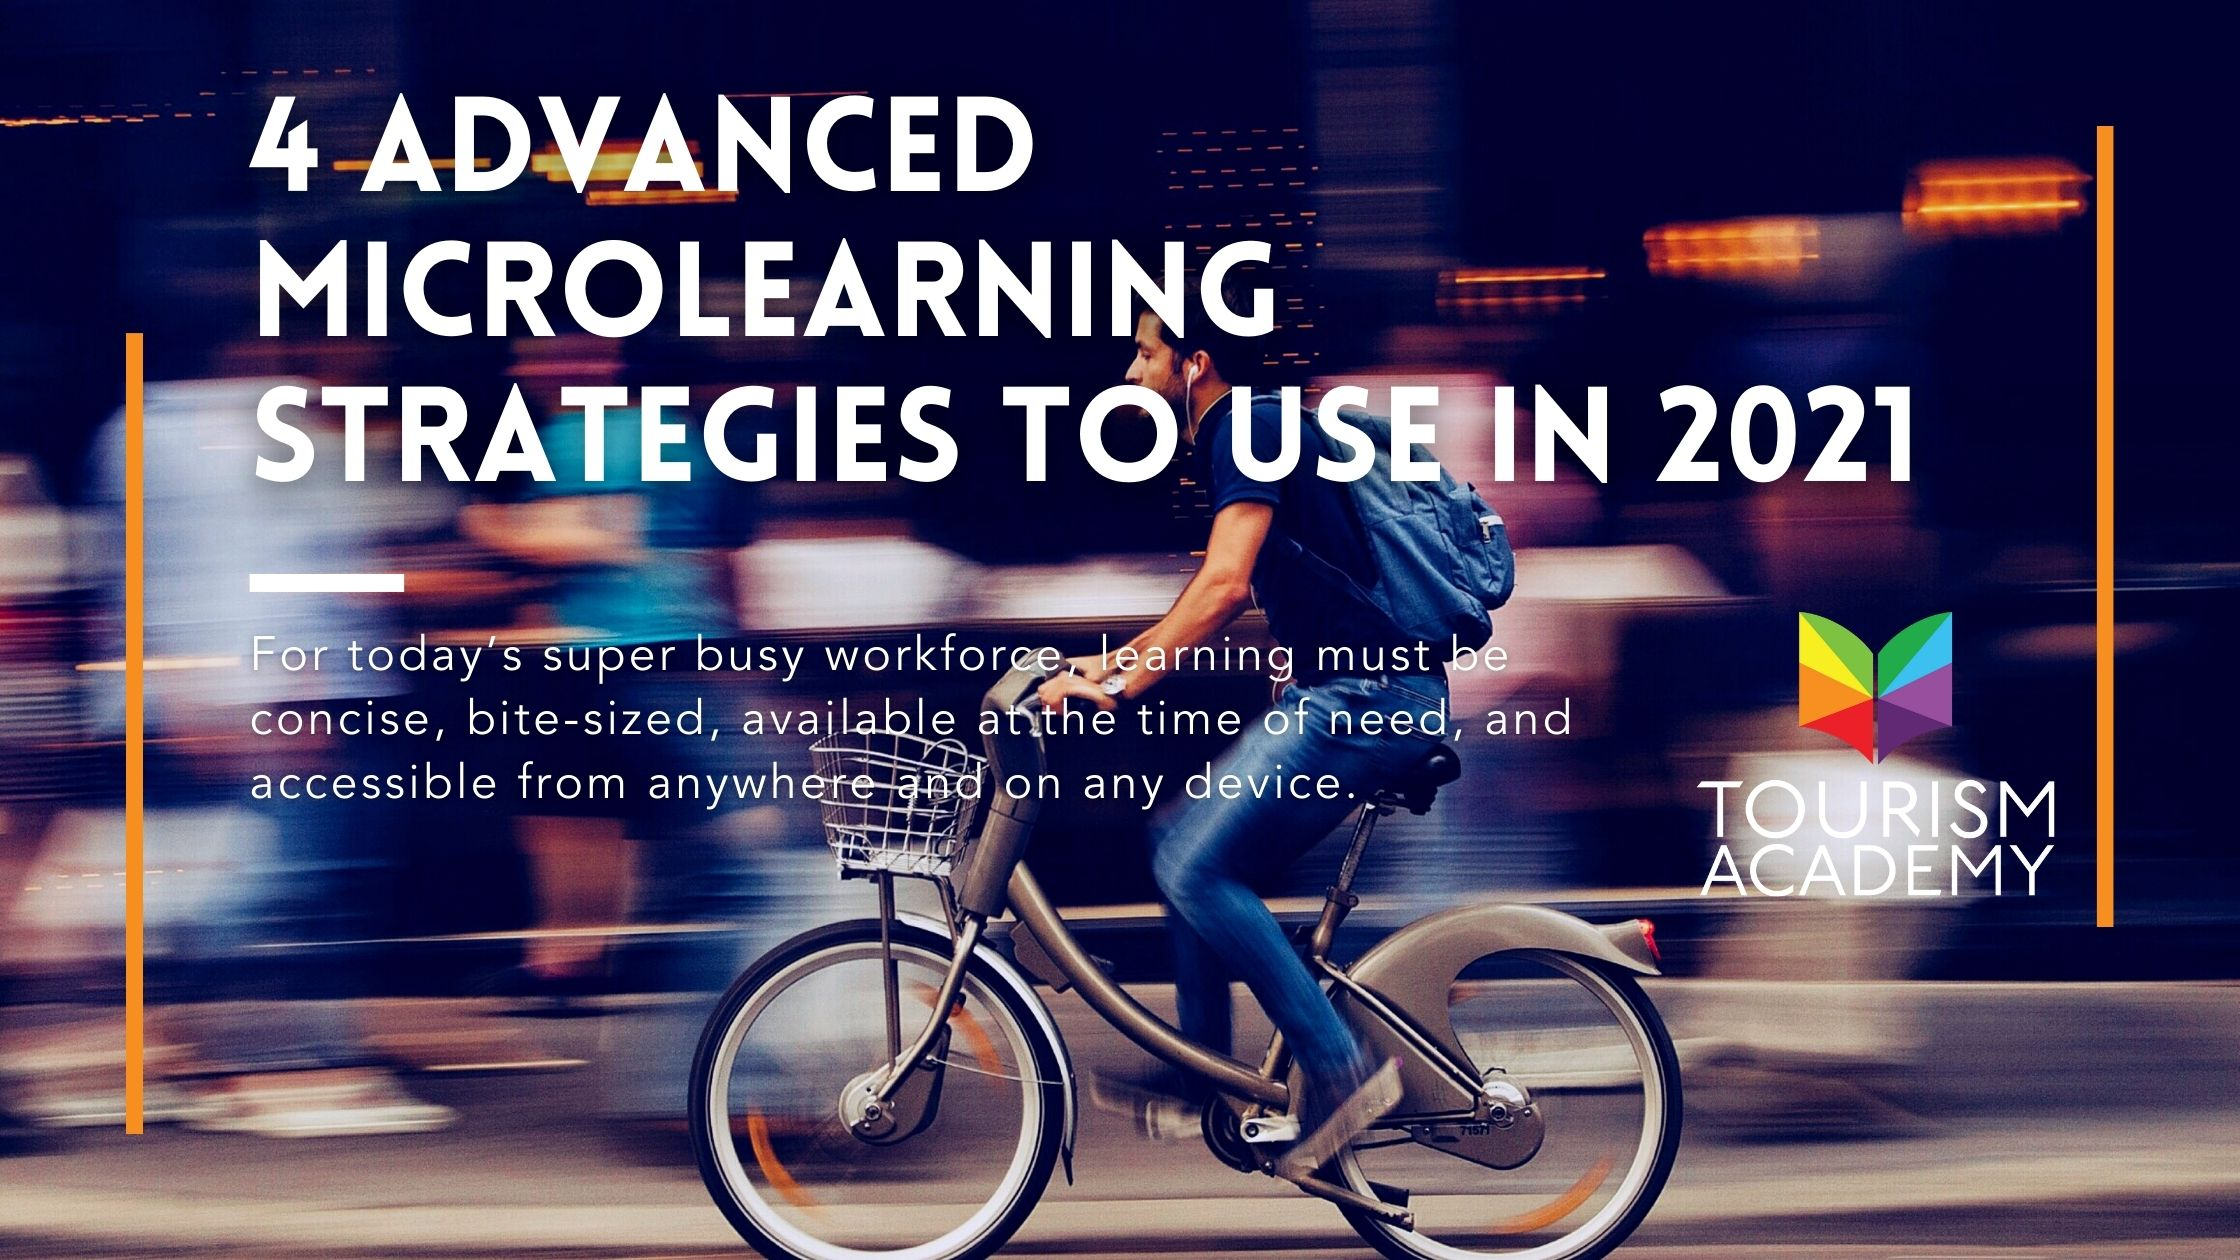 4 Advanced Microlearning Strategies To Use In 2021